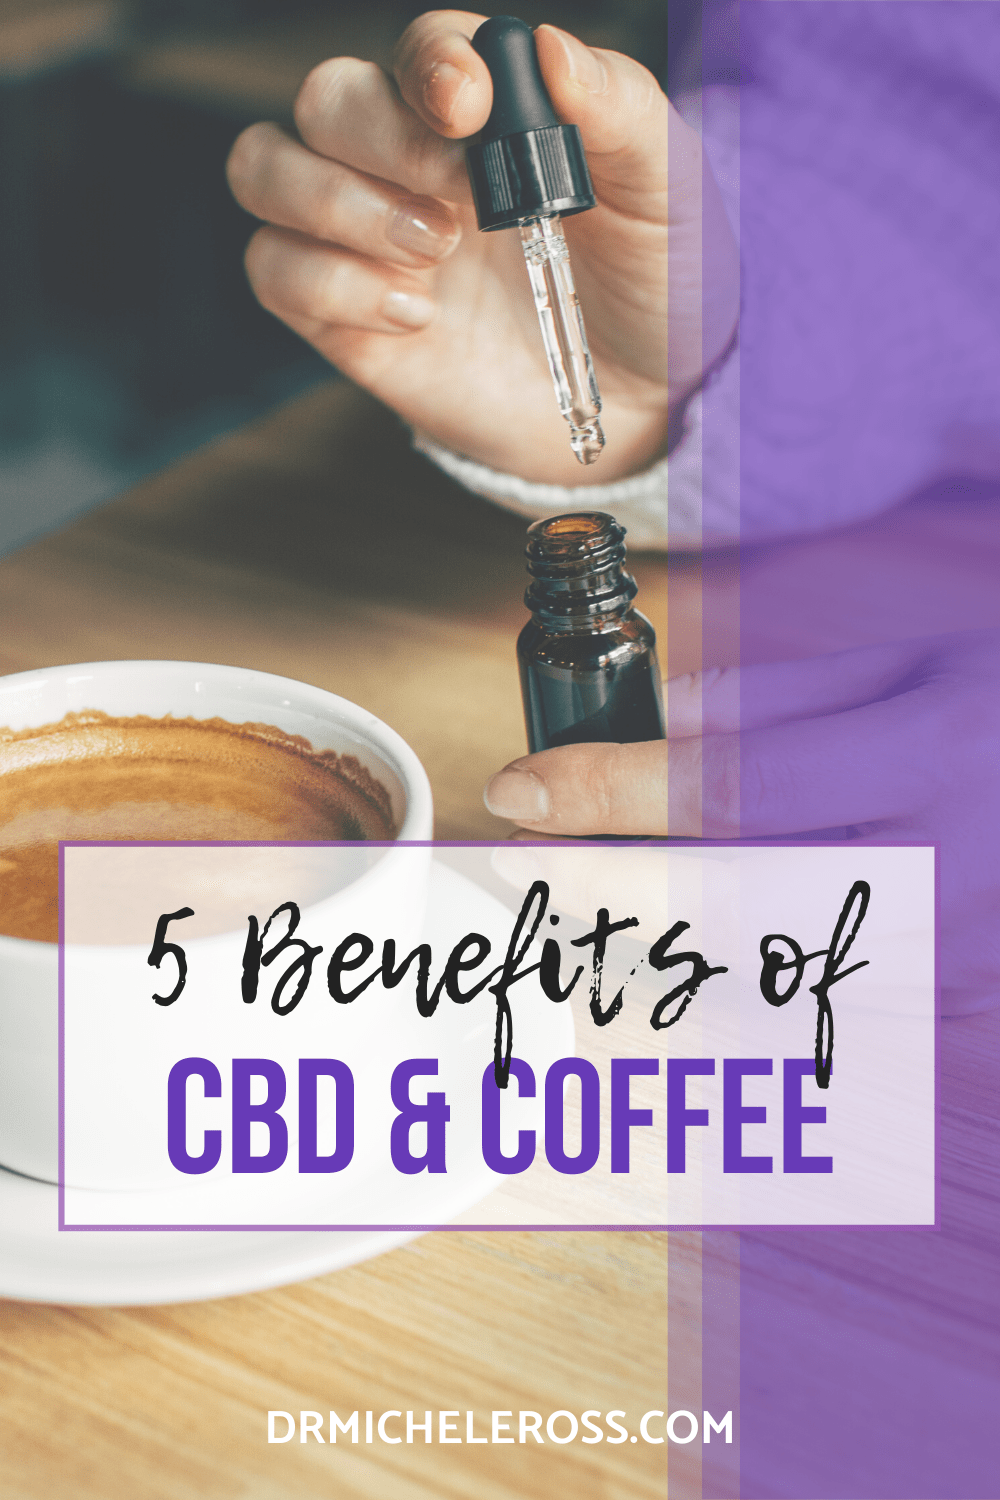 5 Benefits of CBD Coffee